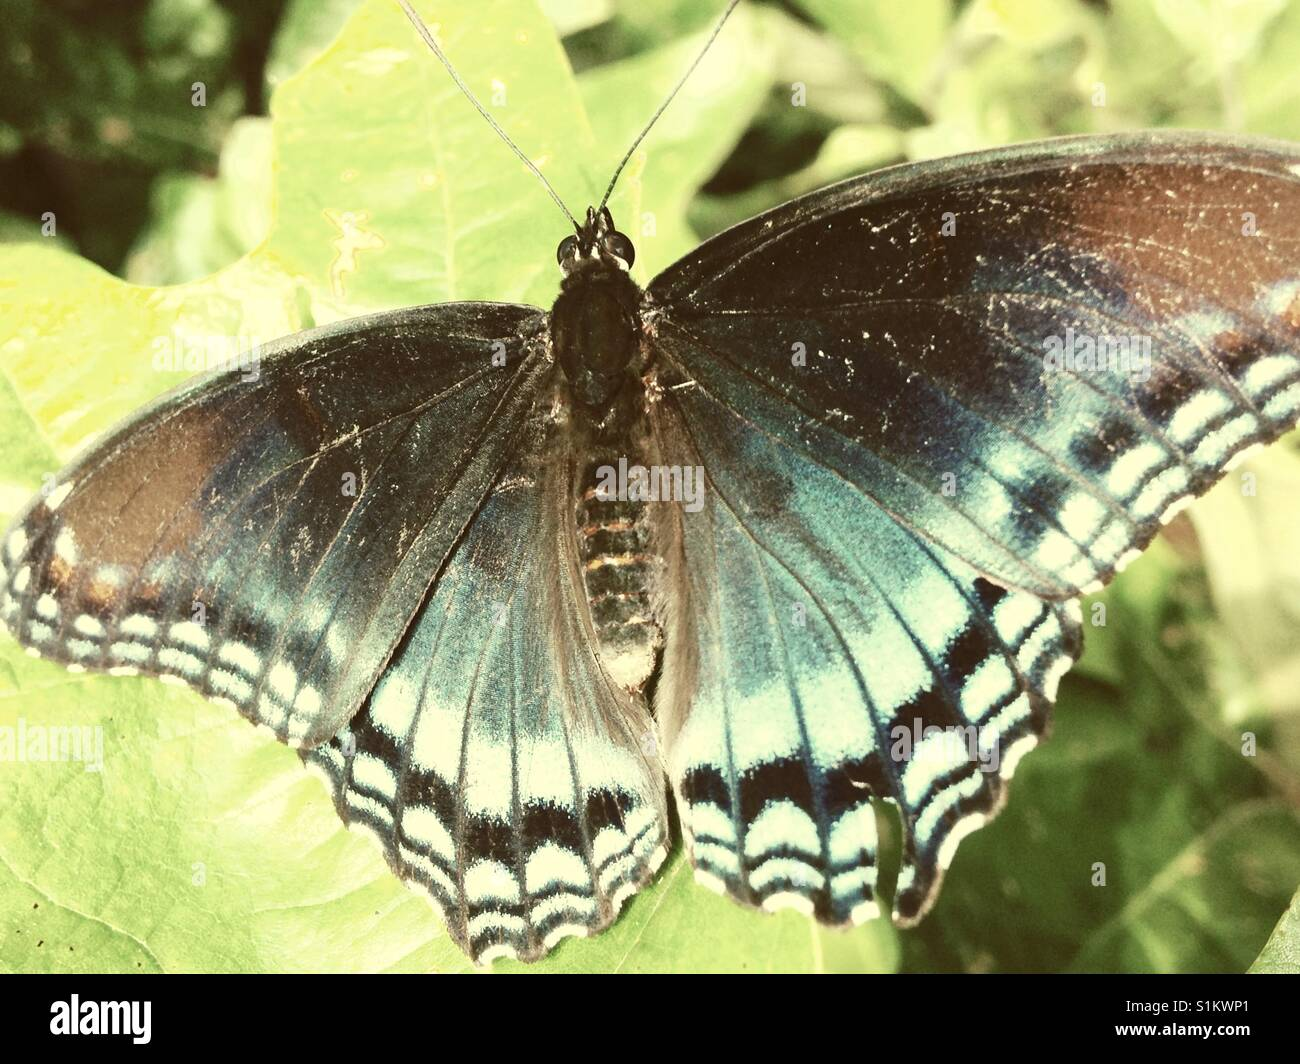 Limenitis arthemis butterfly on leaf in North Carolina backyard - Stock Image